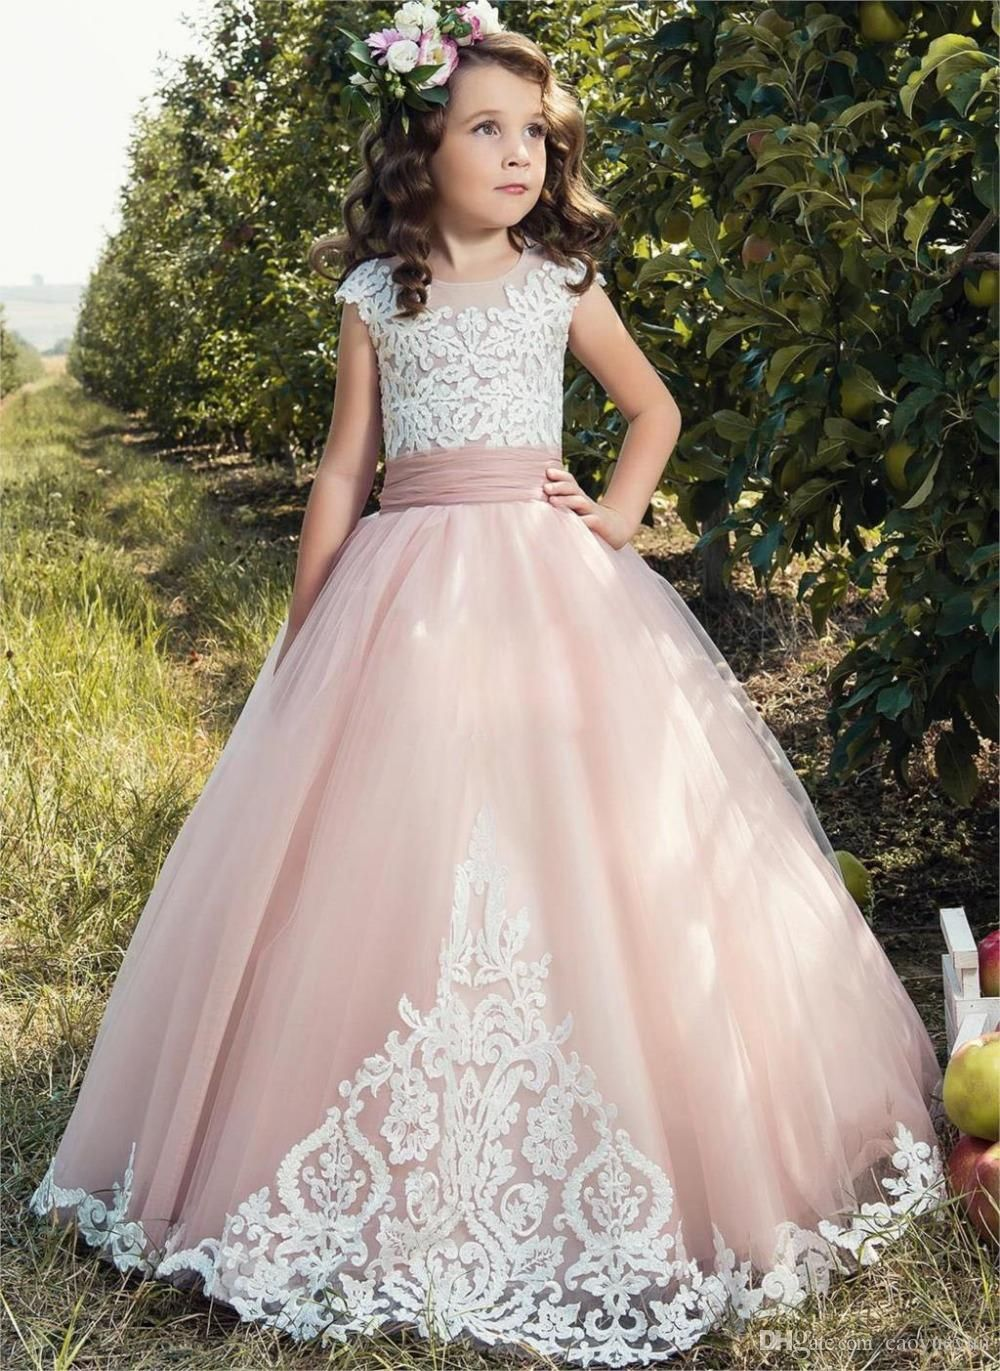 2017 Flower Girl Dresses For Weddings tulle pink Applique Cap Sleeve Kids  Ball Gown bow First Communion Dress Pageant Gowns d3d4d160cb5a